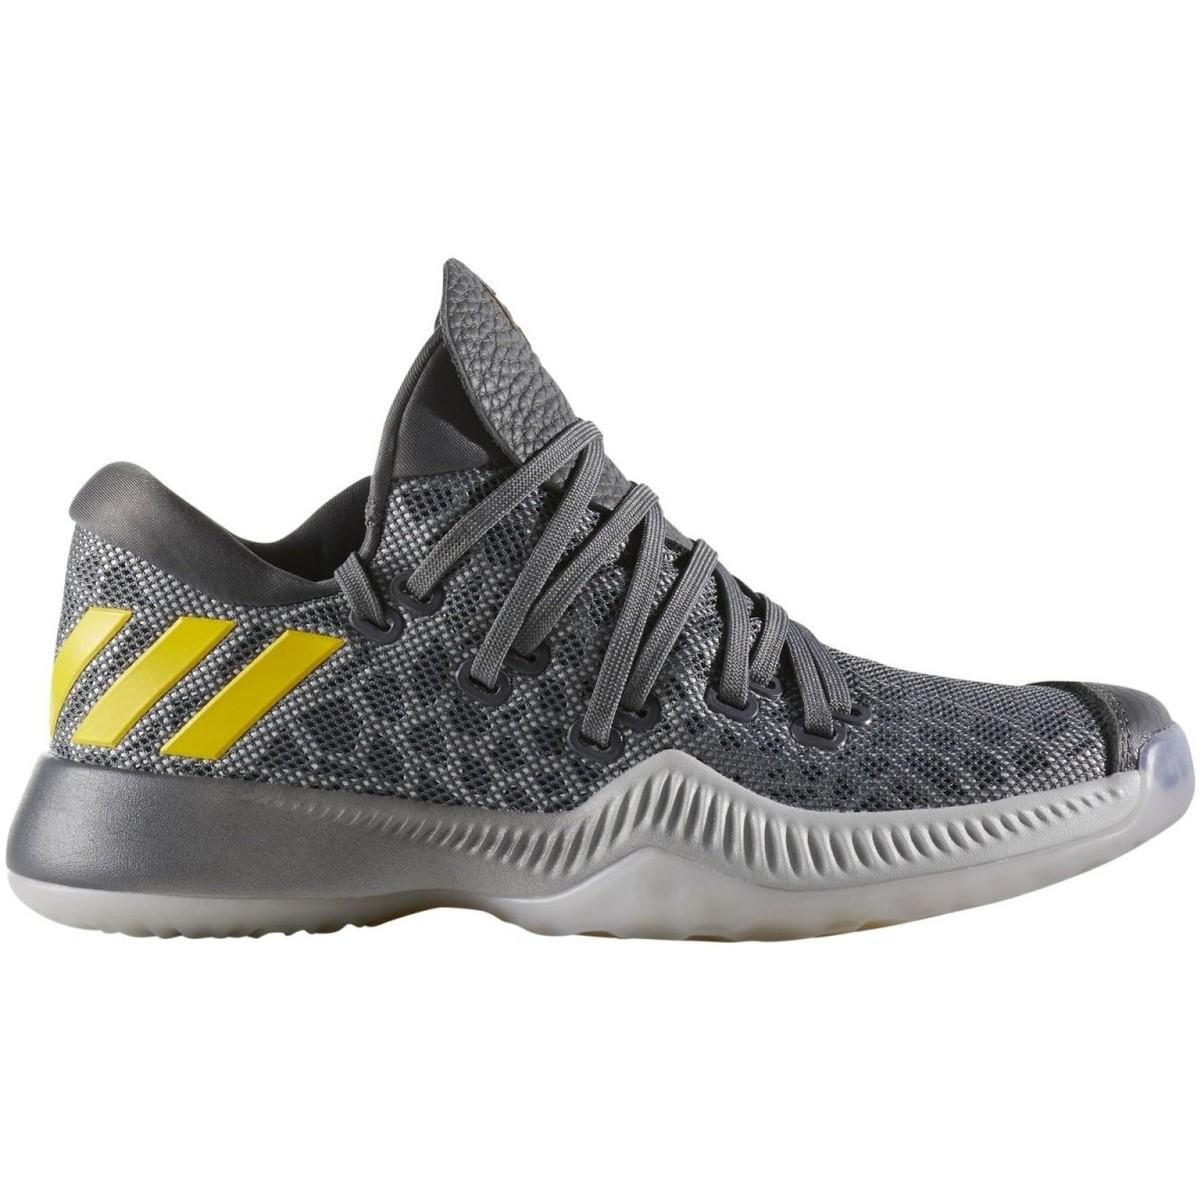 Chaussures de Basketball adida Chaussures adidas pour homme ...